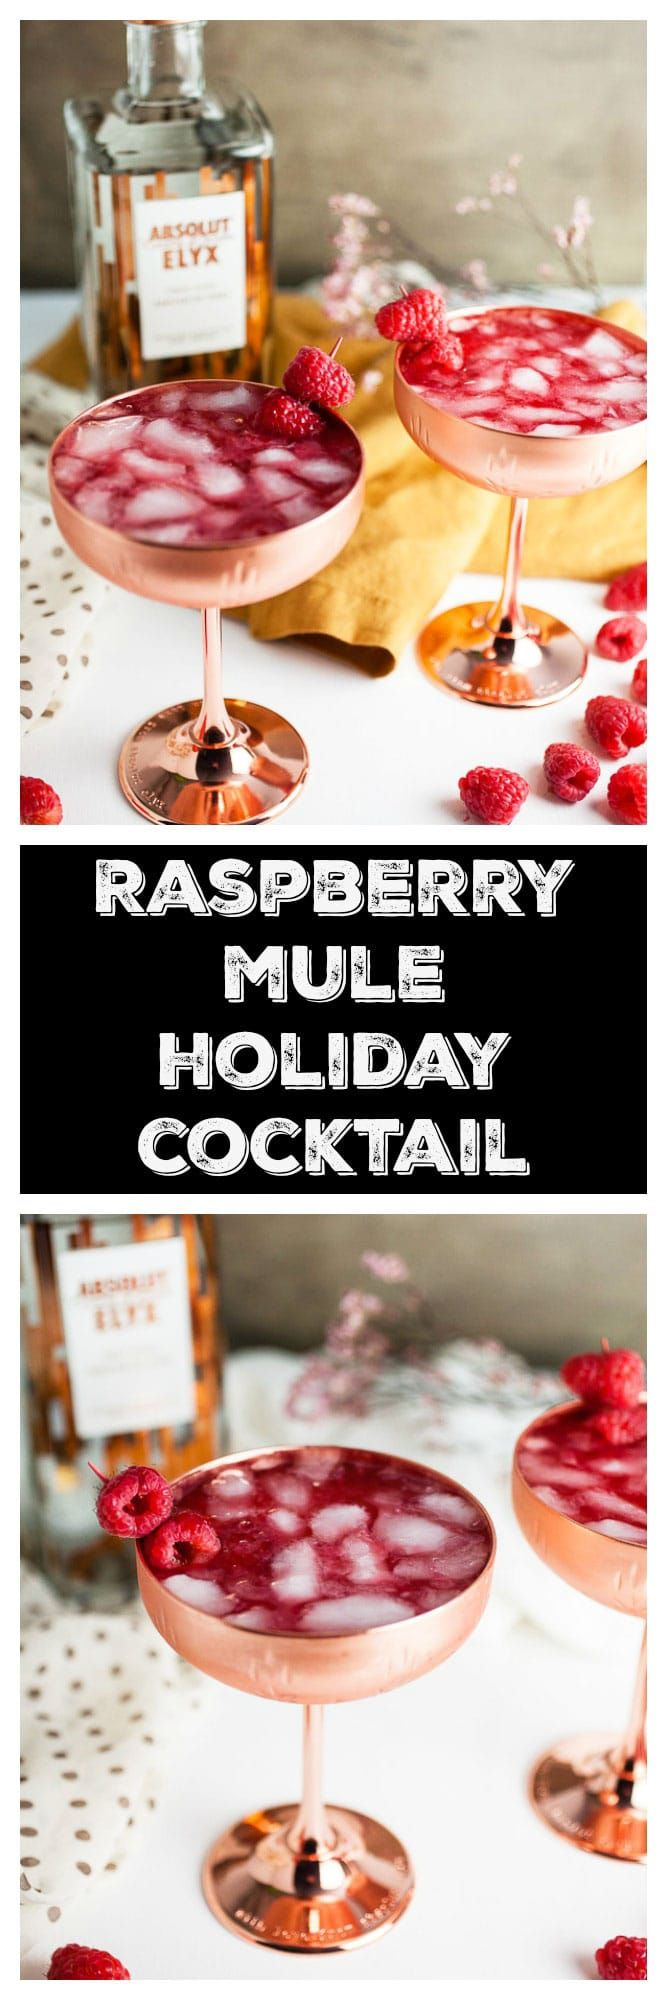 This Raspberry Mule Holiday Cocktail is the perfect way to celebrate the holidays! This fun and festive drink is made with vodka, lime juice, ginger beer, and a homemade raspberry cordial. This Raspberry Mule is a variation on the more classic Moscow Mule. It's a great easy recipe for a holiday party, New Year's, or anytime. #ad #coppermakesitbetter #raspberrymule #cocktails @absolutelyx